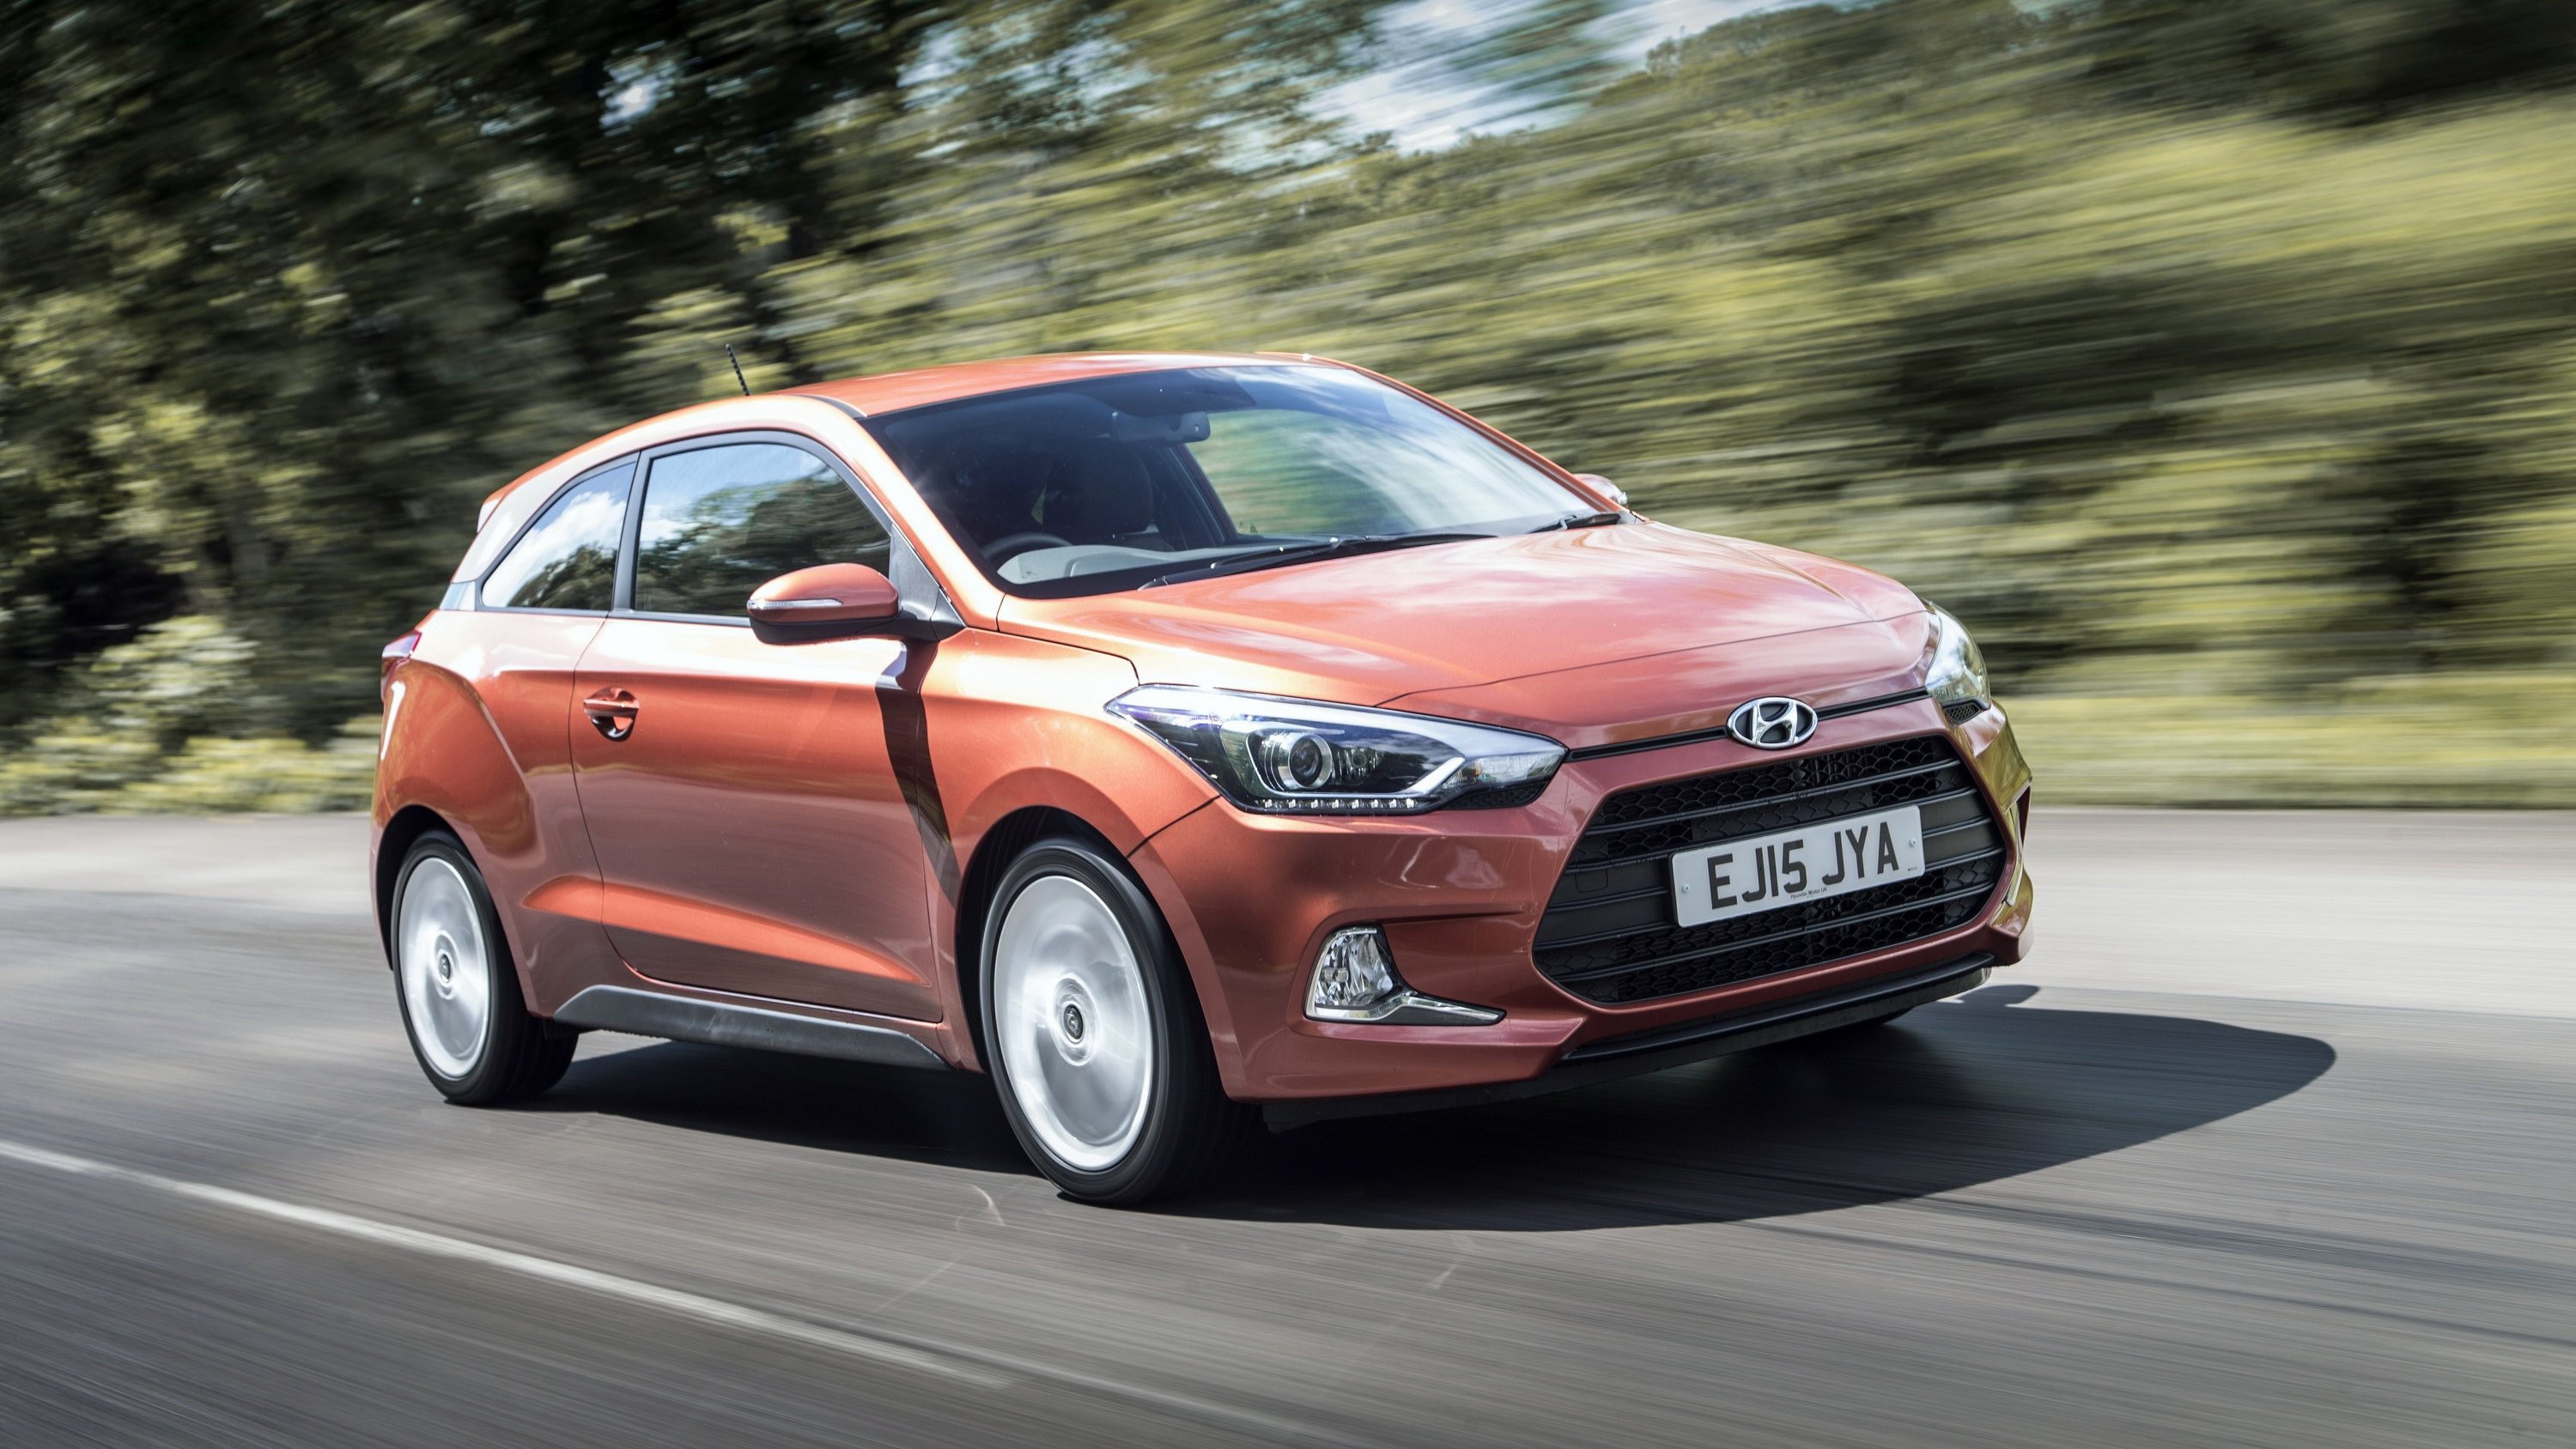 2015 hyundai i20 coupe review gallery top speed. Black Bedroom Furniture Sets. Home Design Ideas